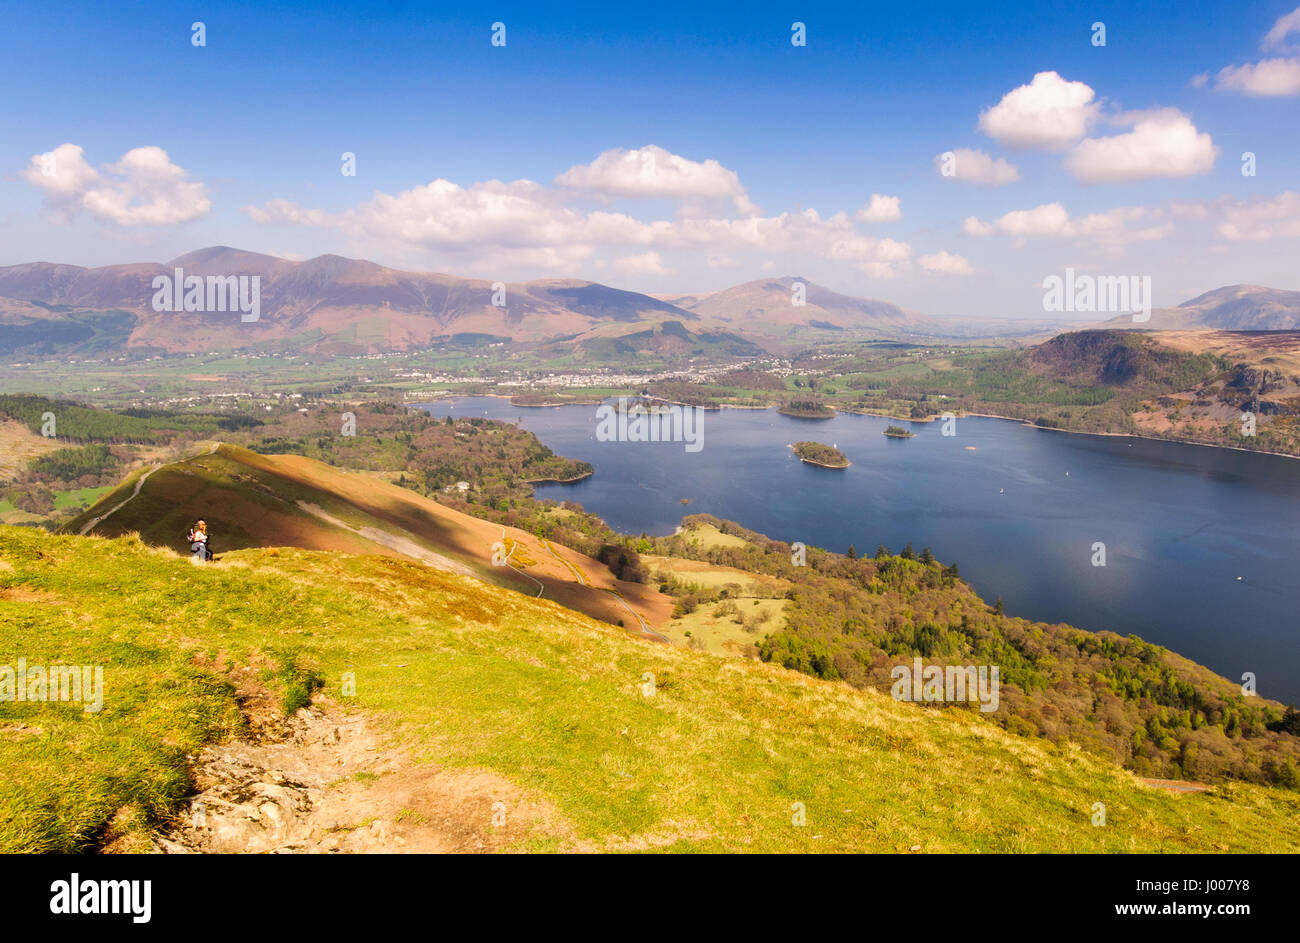 Keswick, England - April 19, 2009: A climber on Catbells mountain stops to admite the view of forests and fields - Stock Image